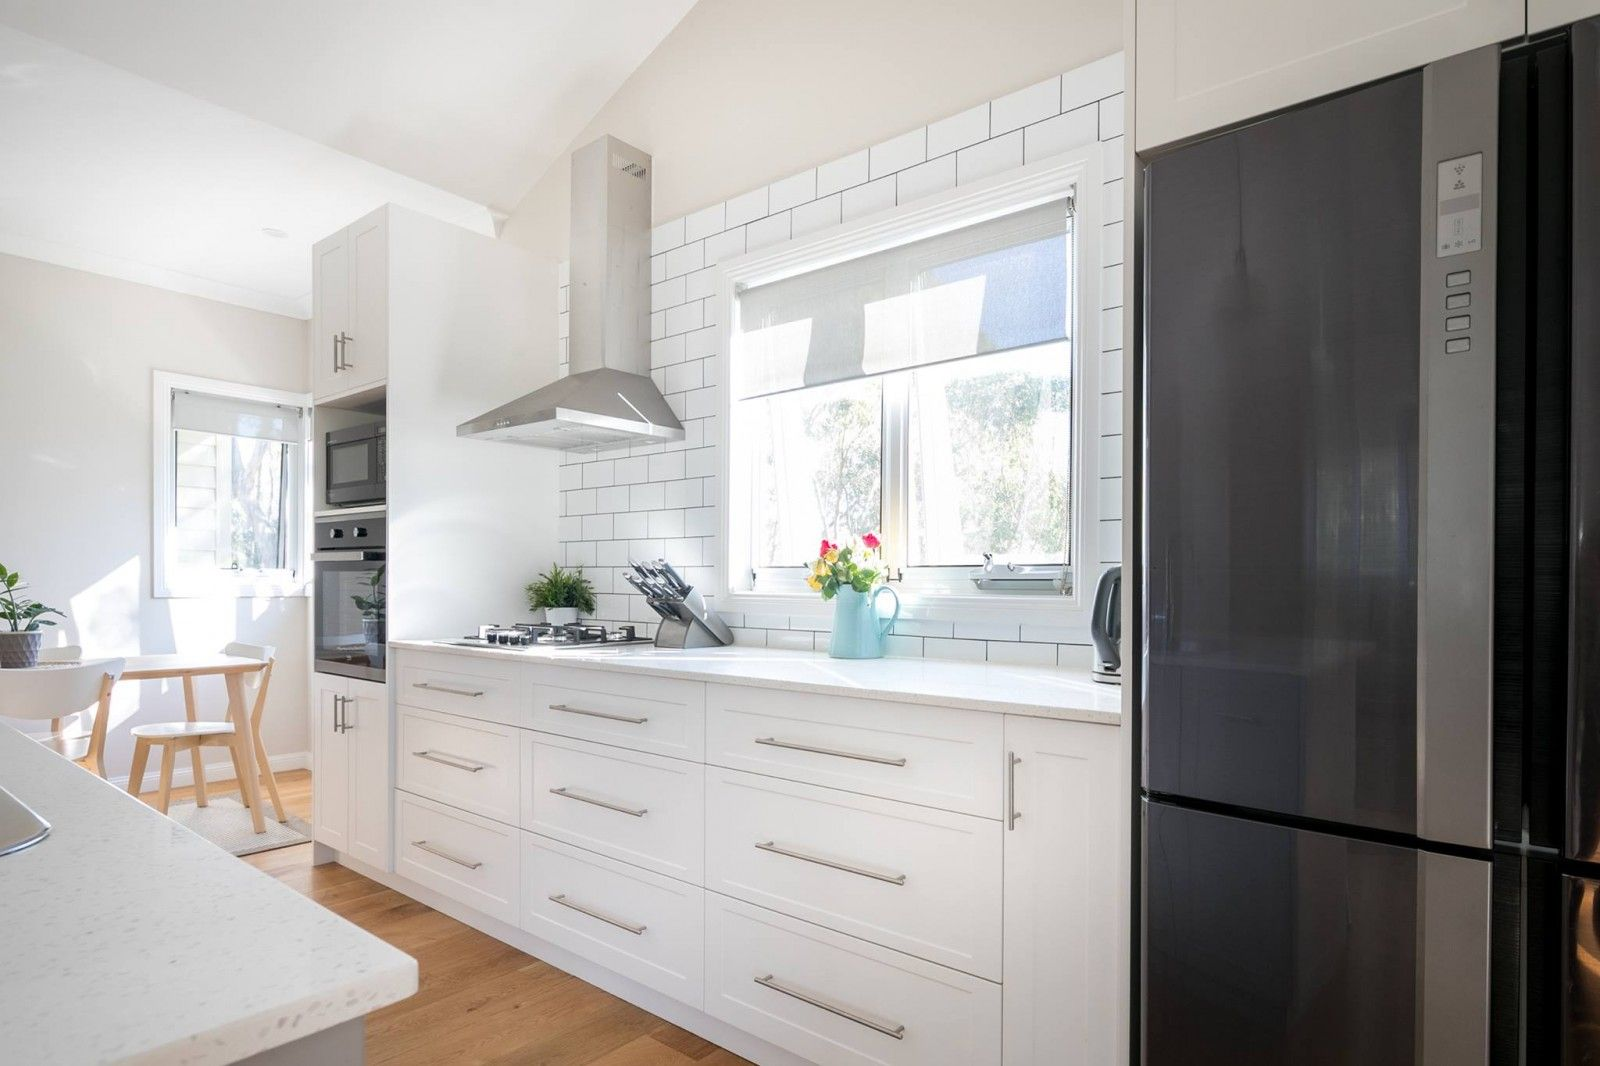 how much does it cost to replace a kitchen countertop